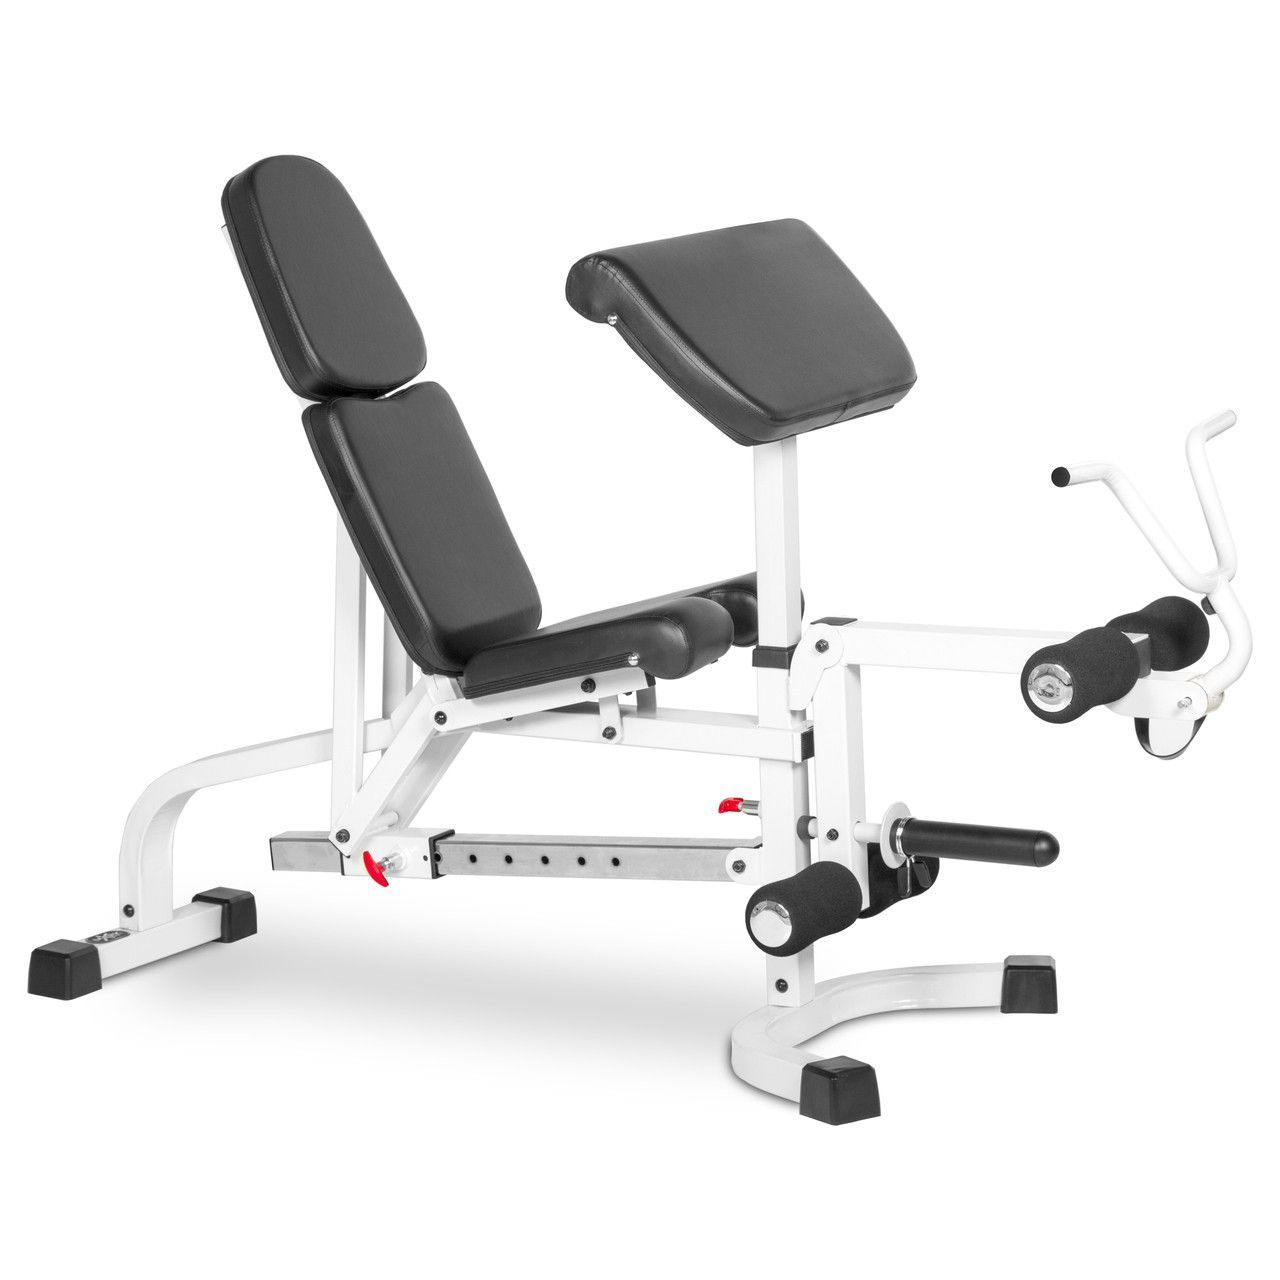 Xmark Fid Flat Incline Decline Weight Bench With Leg Extension And Preacher Curl Xm 4419 White Weight Benches Preacher Curls Leg Extensions